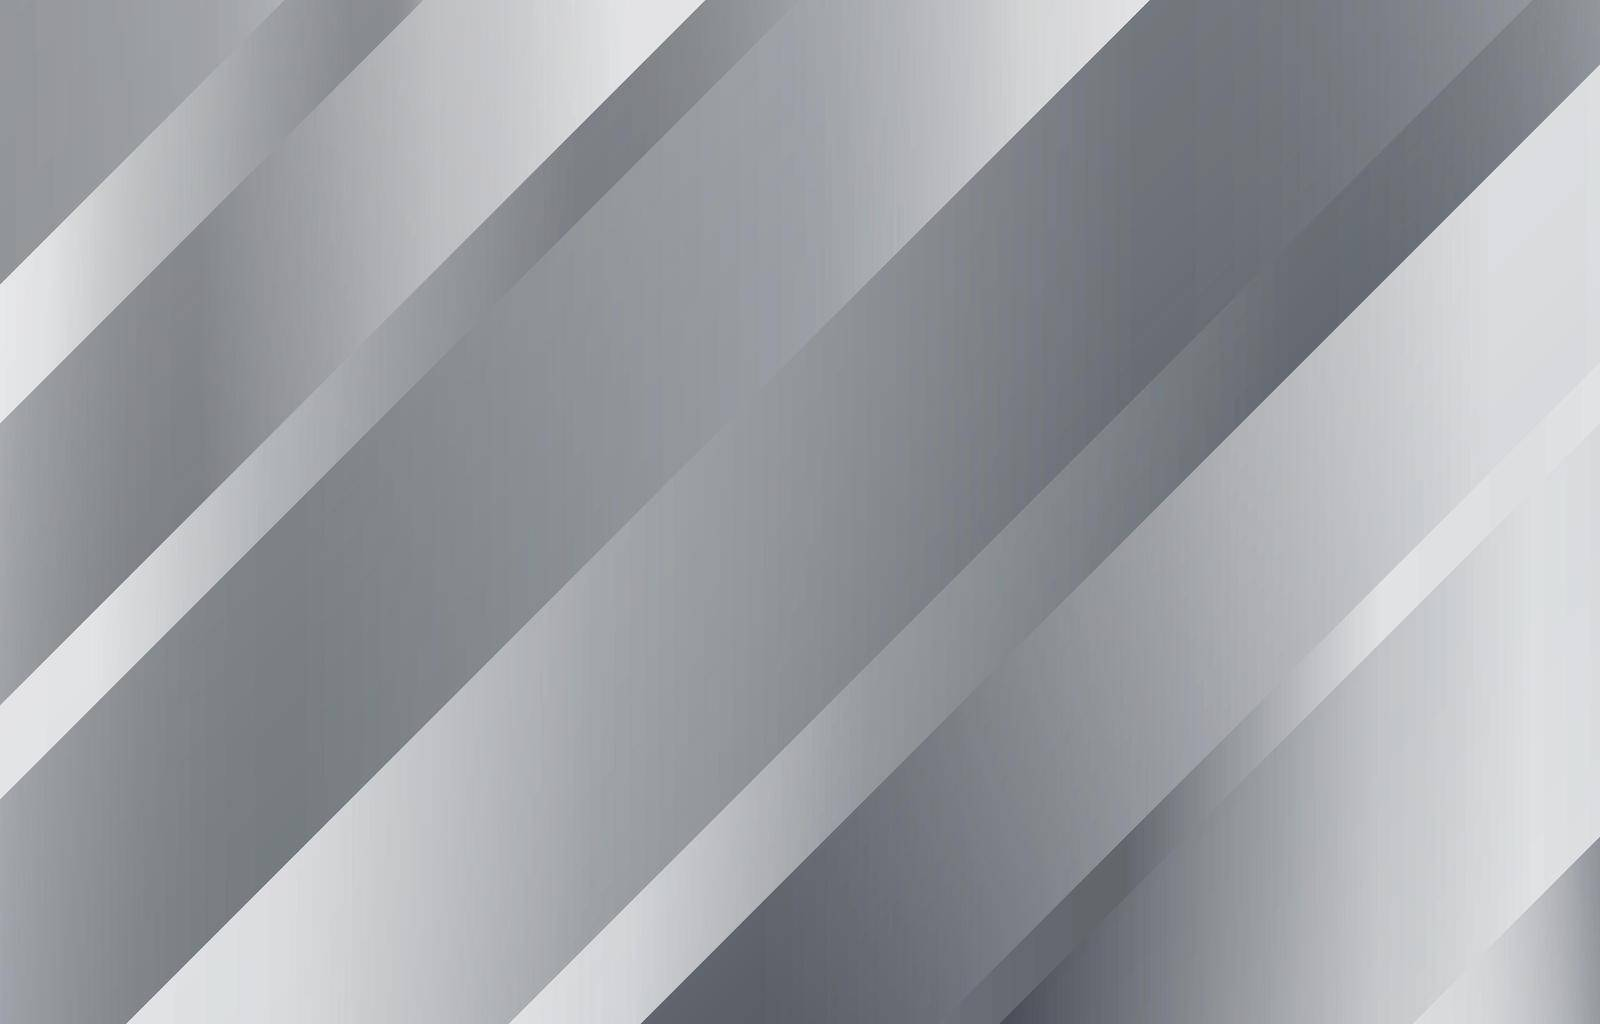 Modern abstract gray and white geometric background with bright stripes.